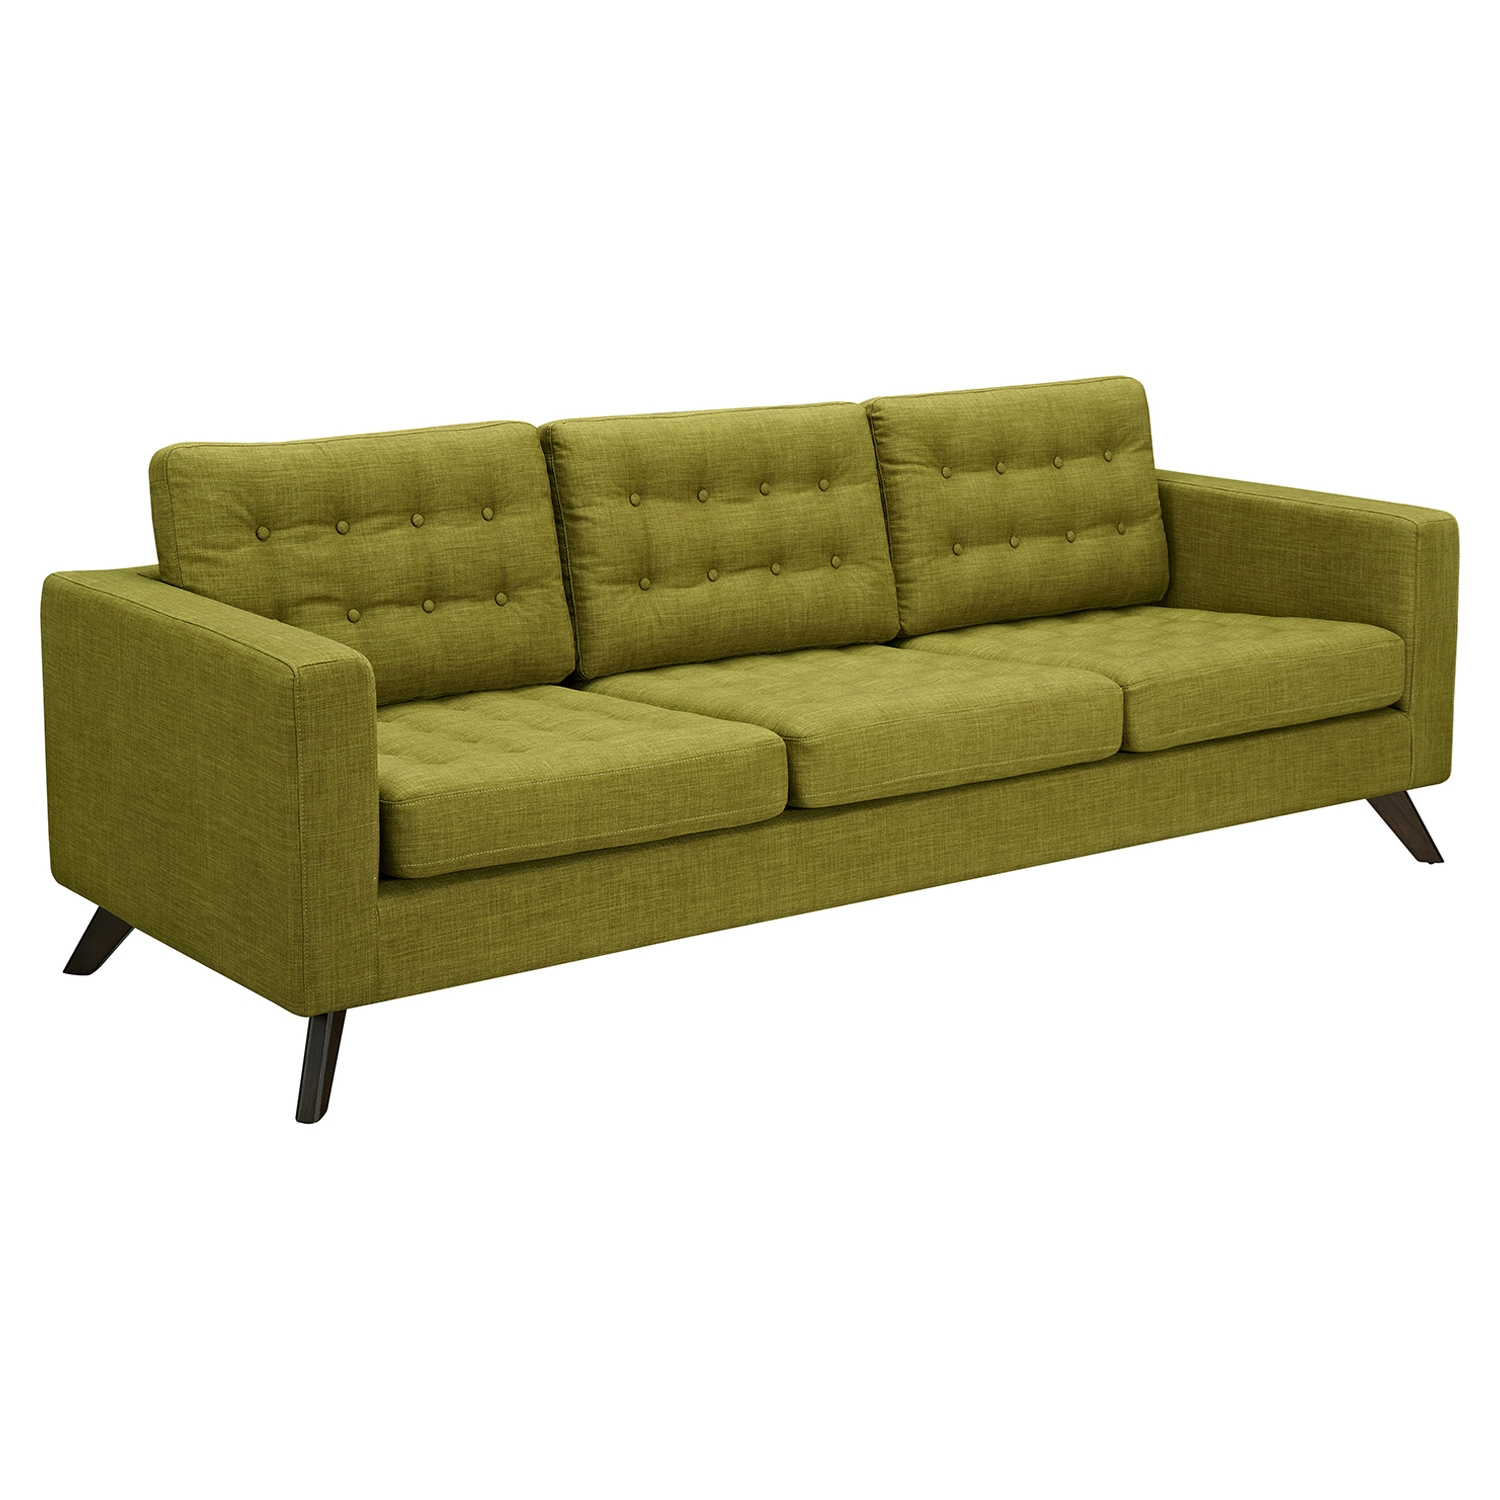 Mina Sofa - Avocado Green, Tufted - NYEK-224447